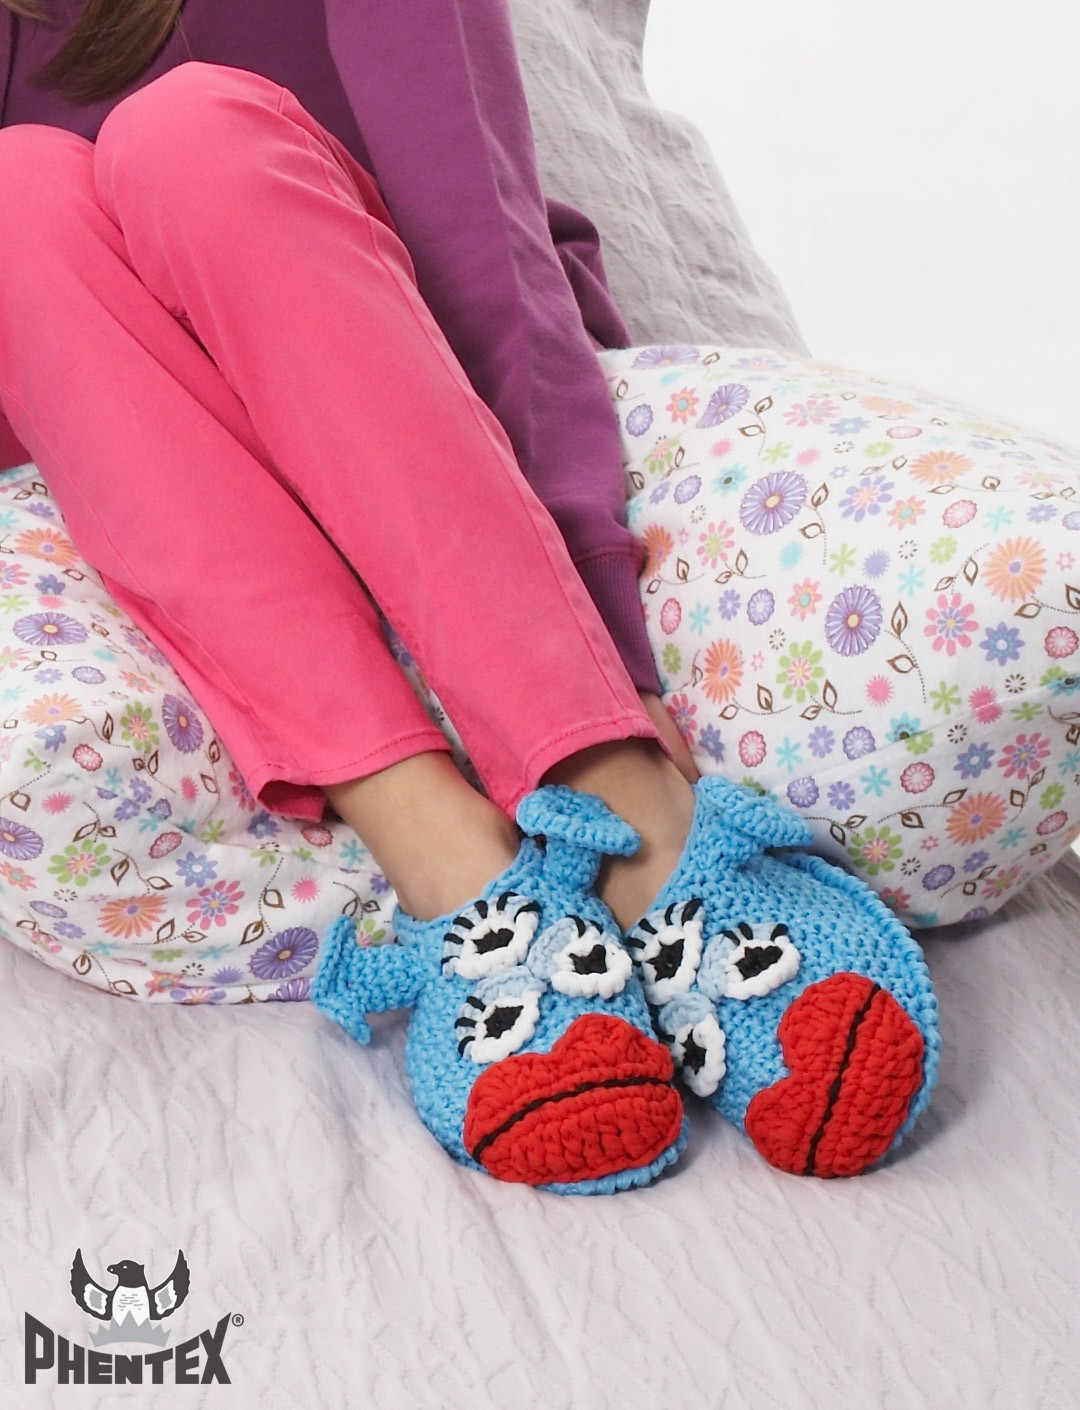 Blue Meanie Monster Slippers